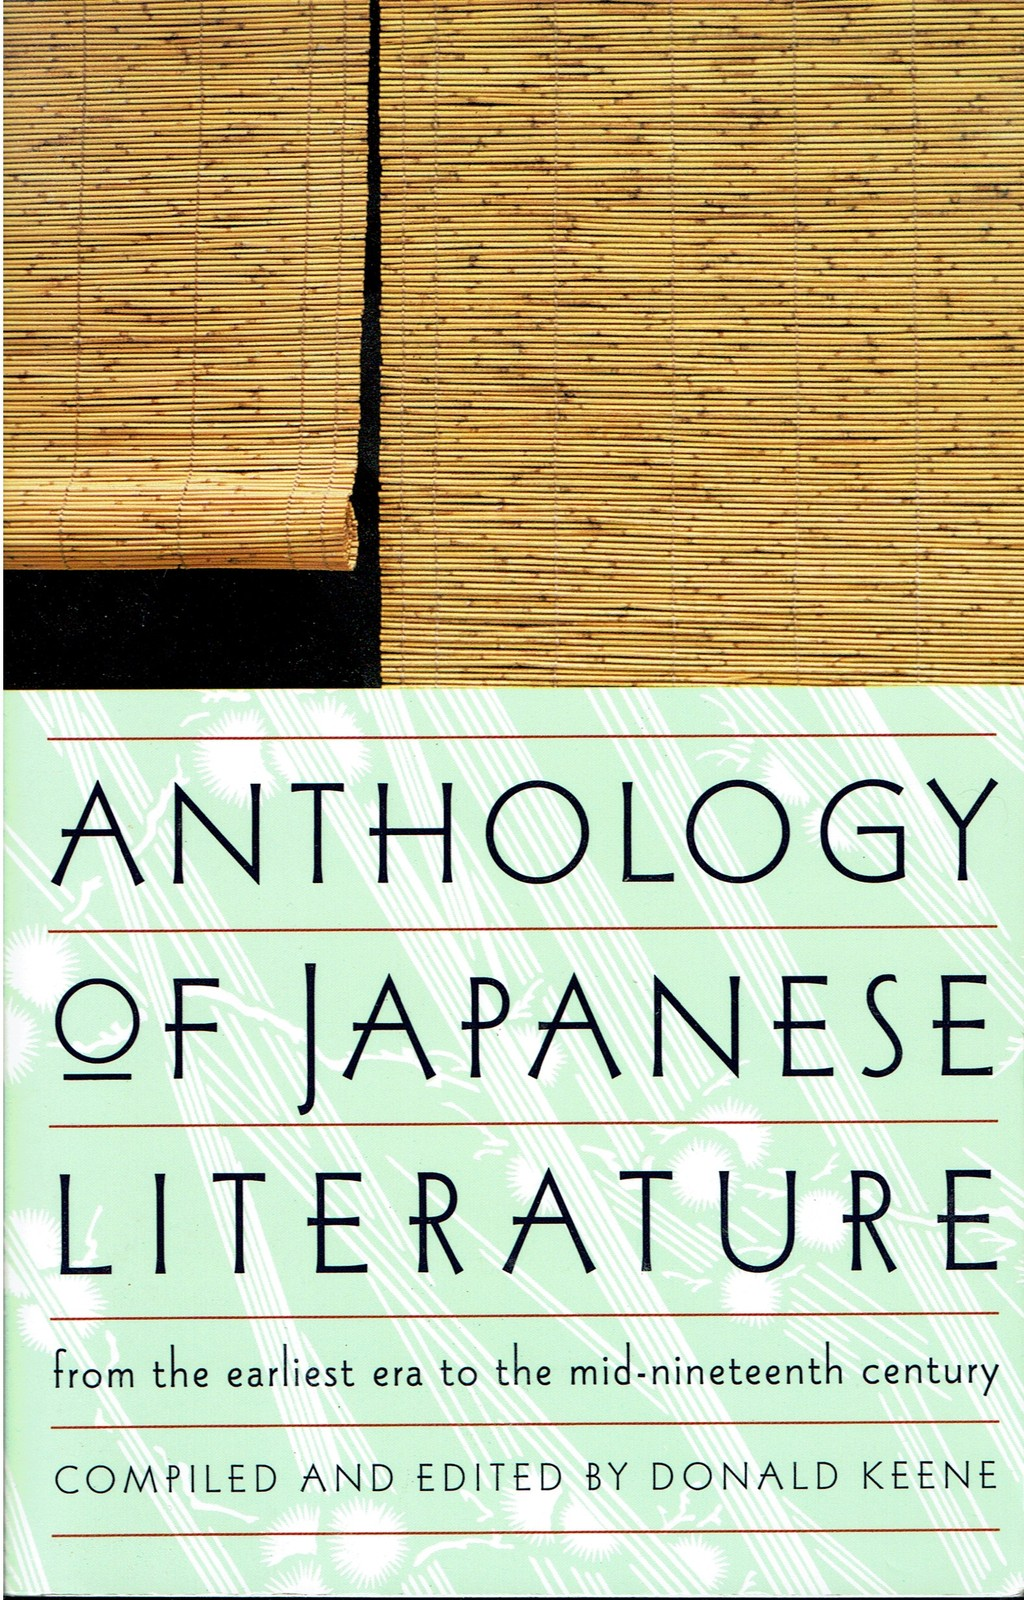 Anthology of Japanese Literature, from earliest era to mid-nineteenth century